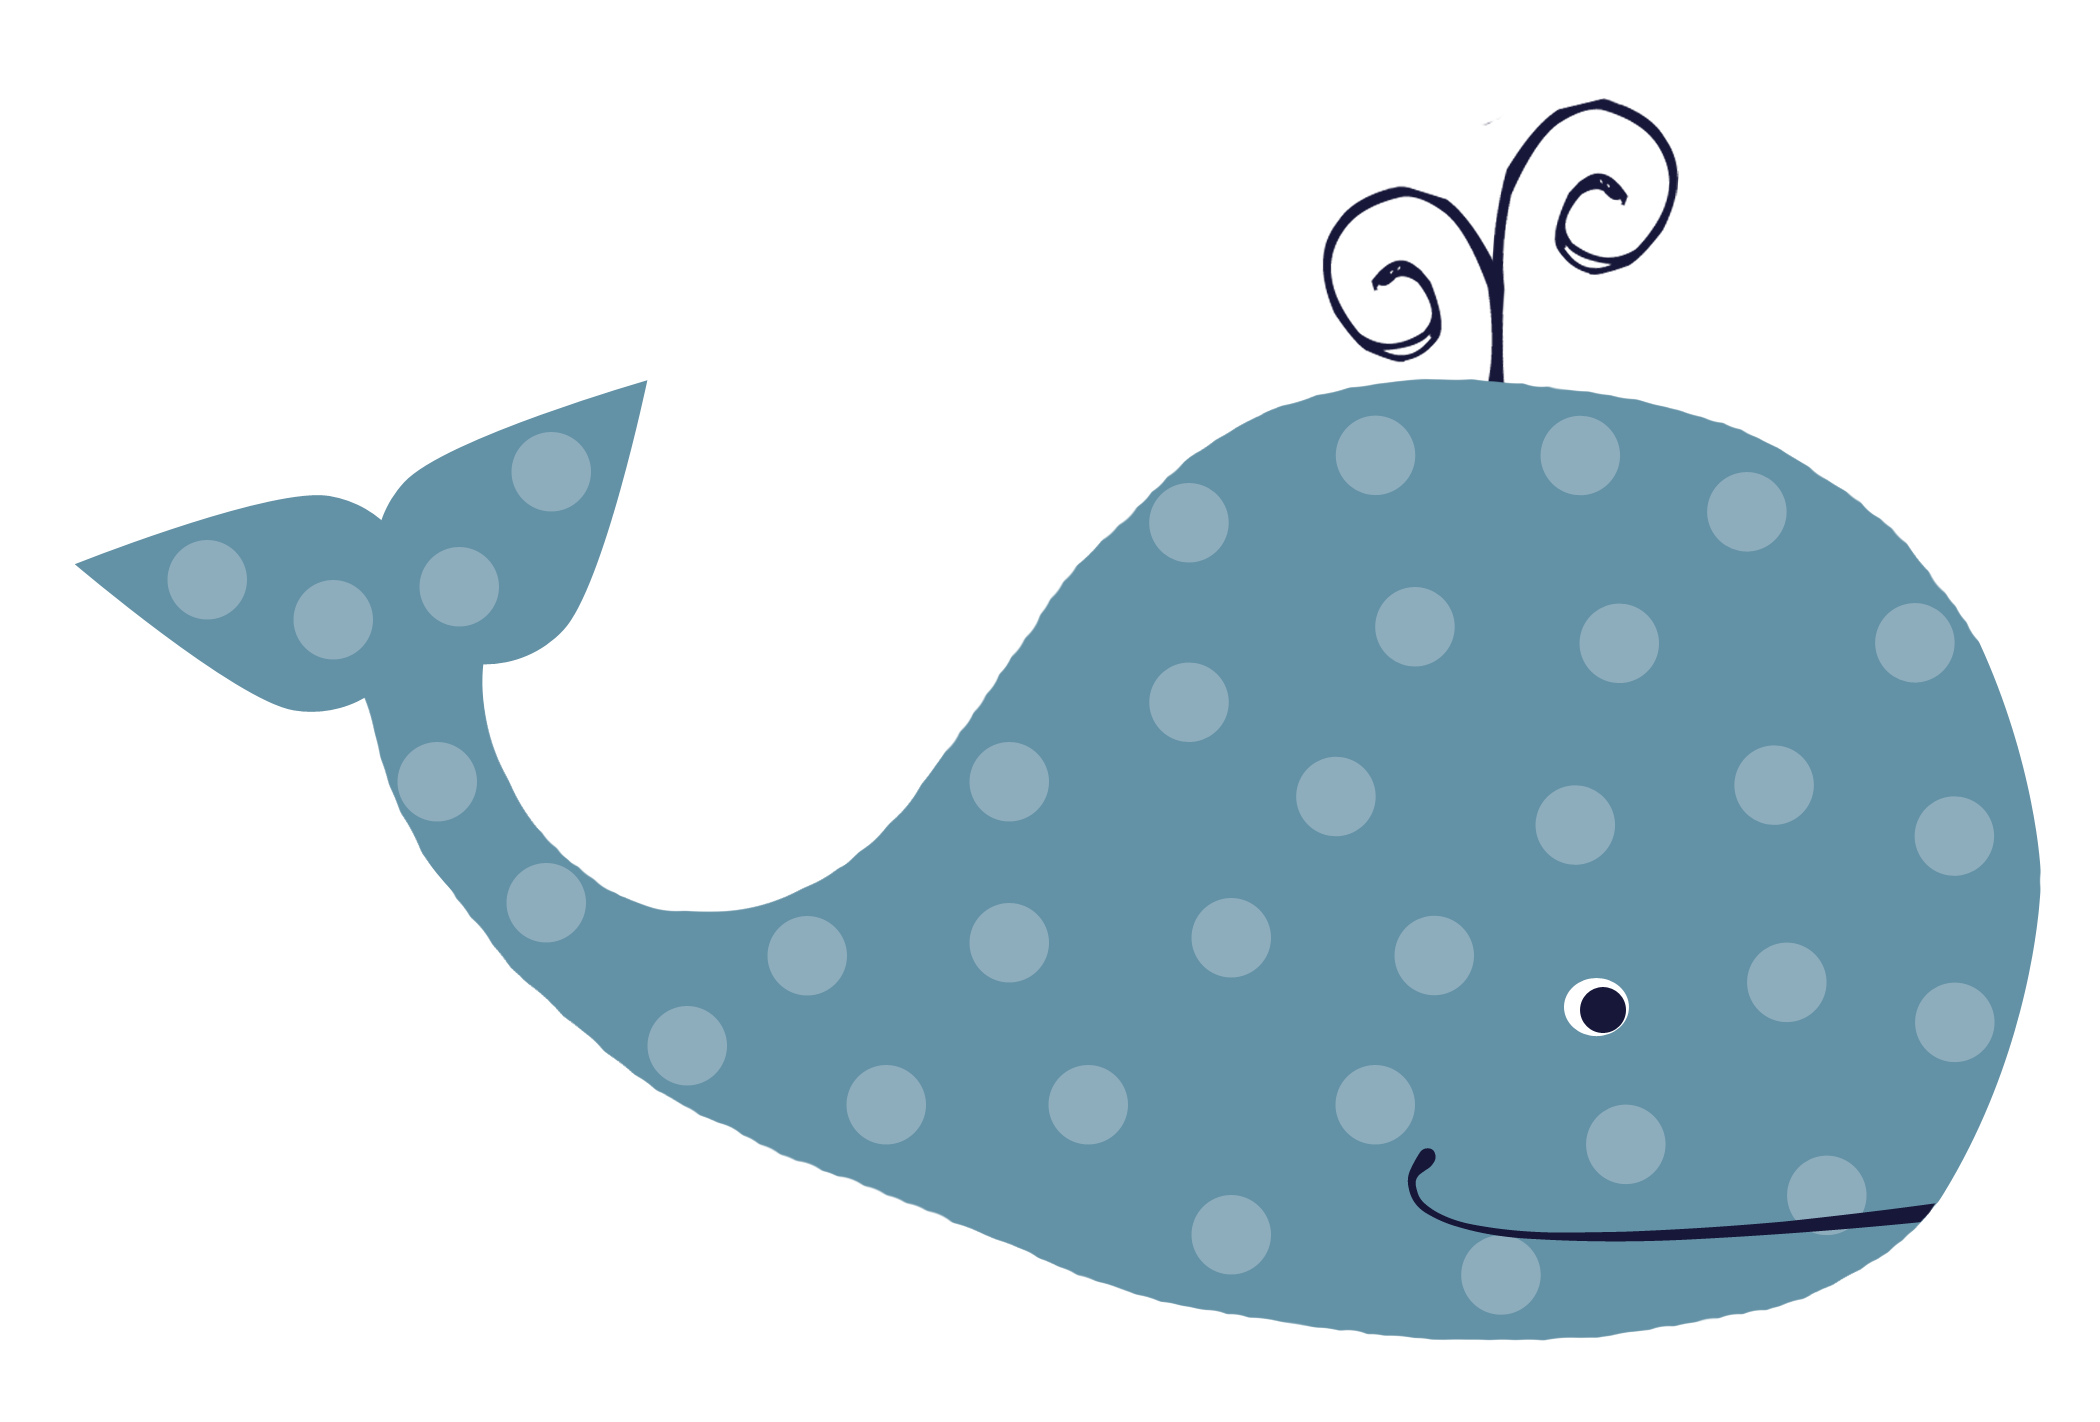 Transparent whale nautical. Cute pictures of whales